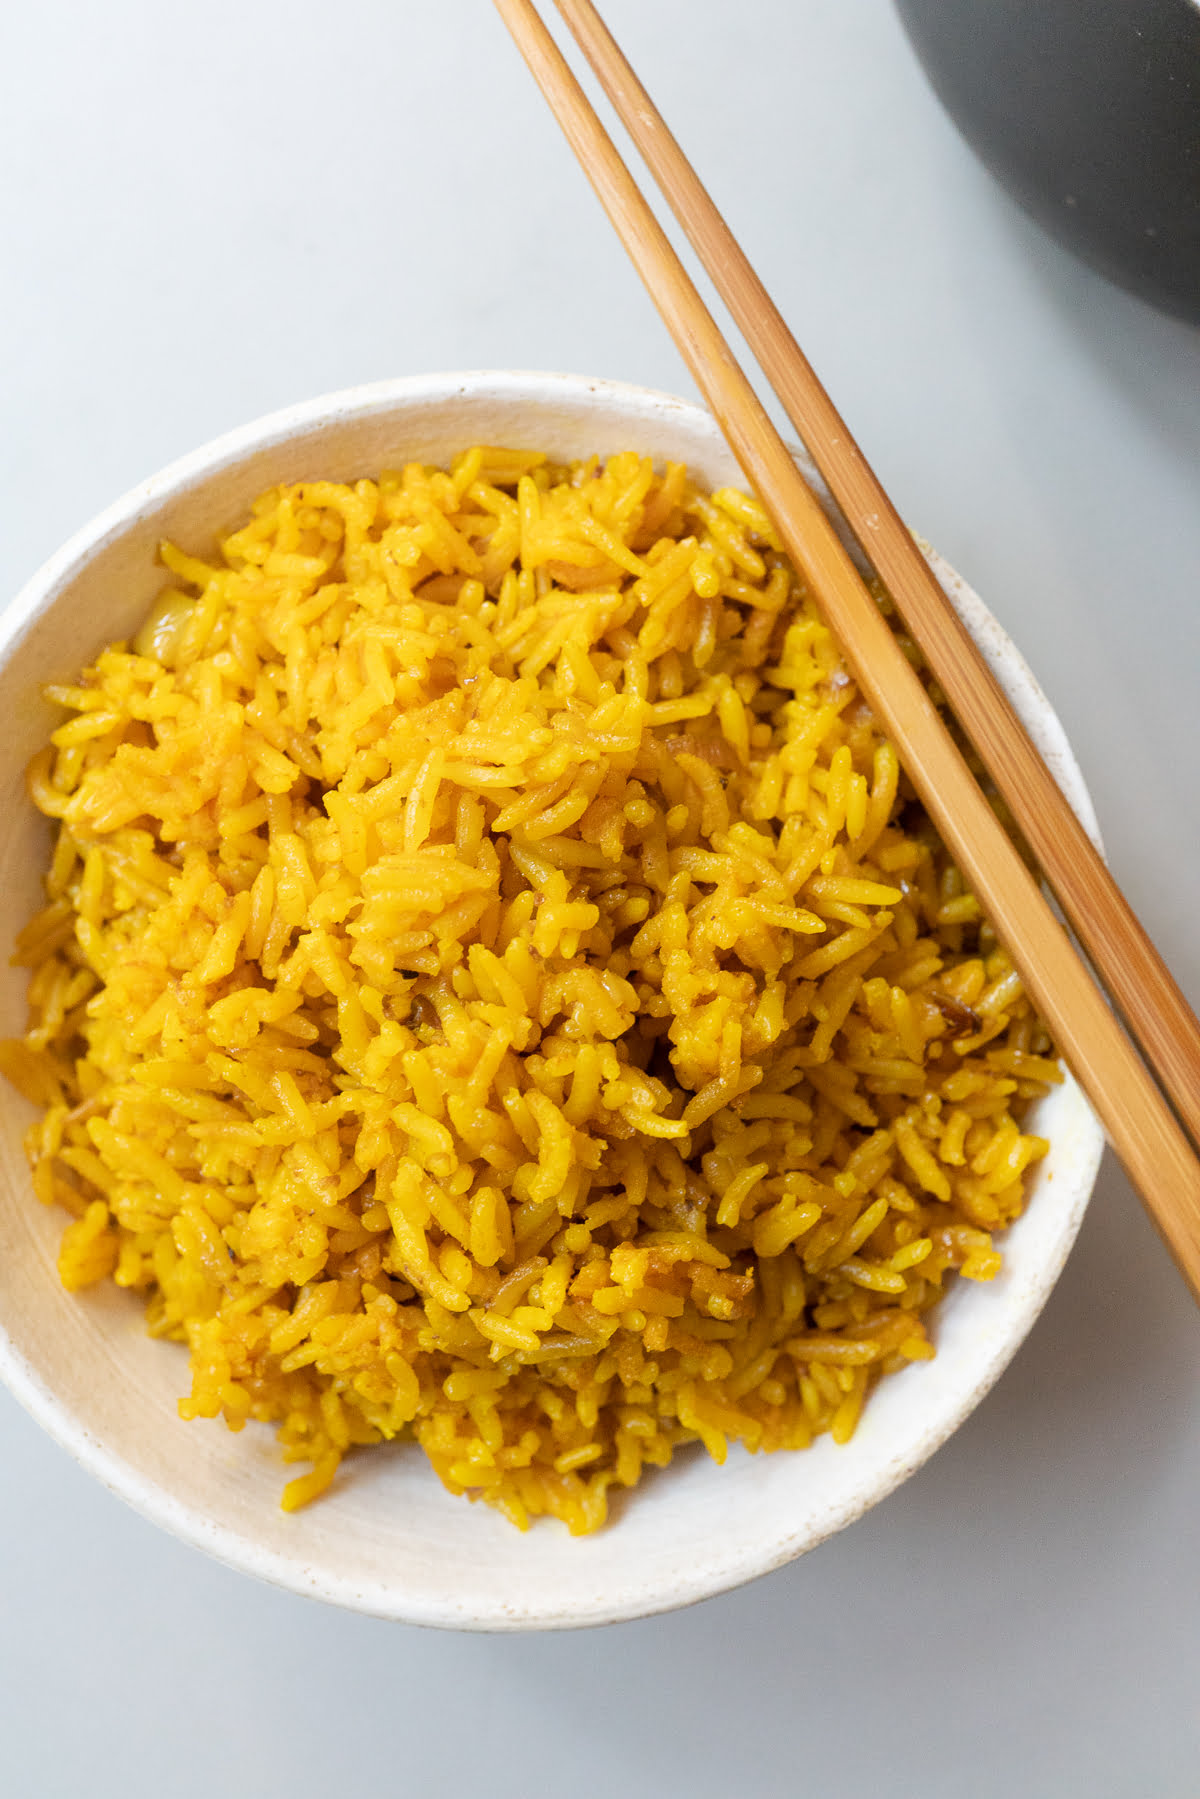 A bowl of freshly cooked turmeric rice.